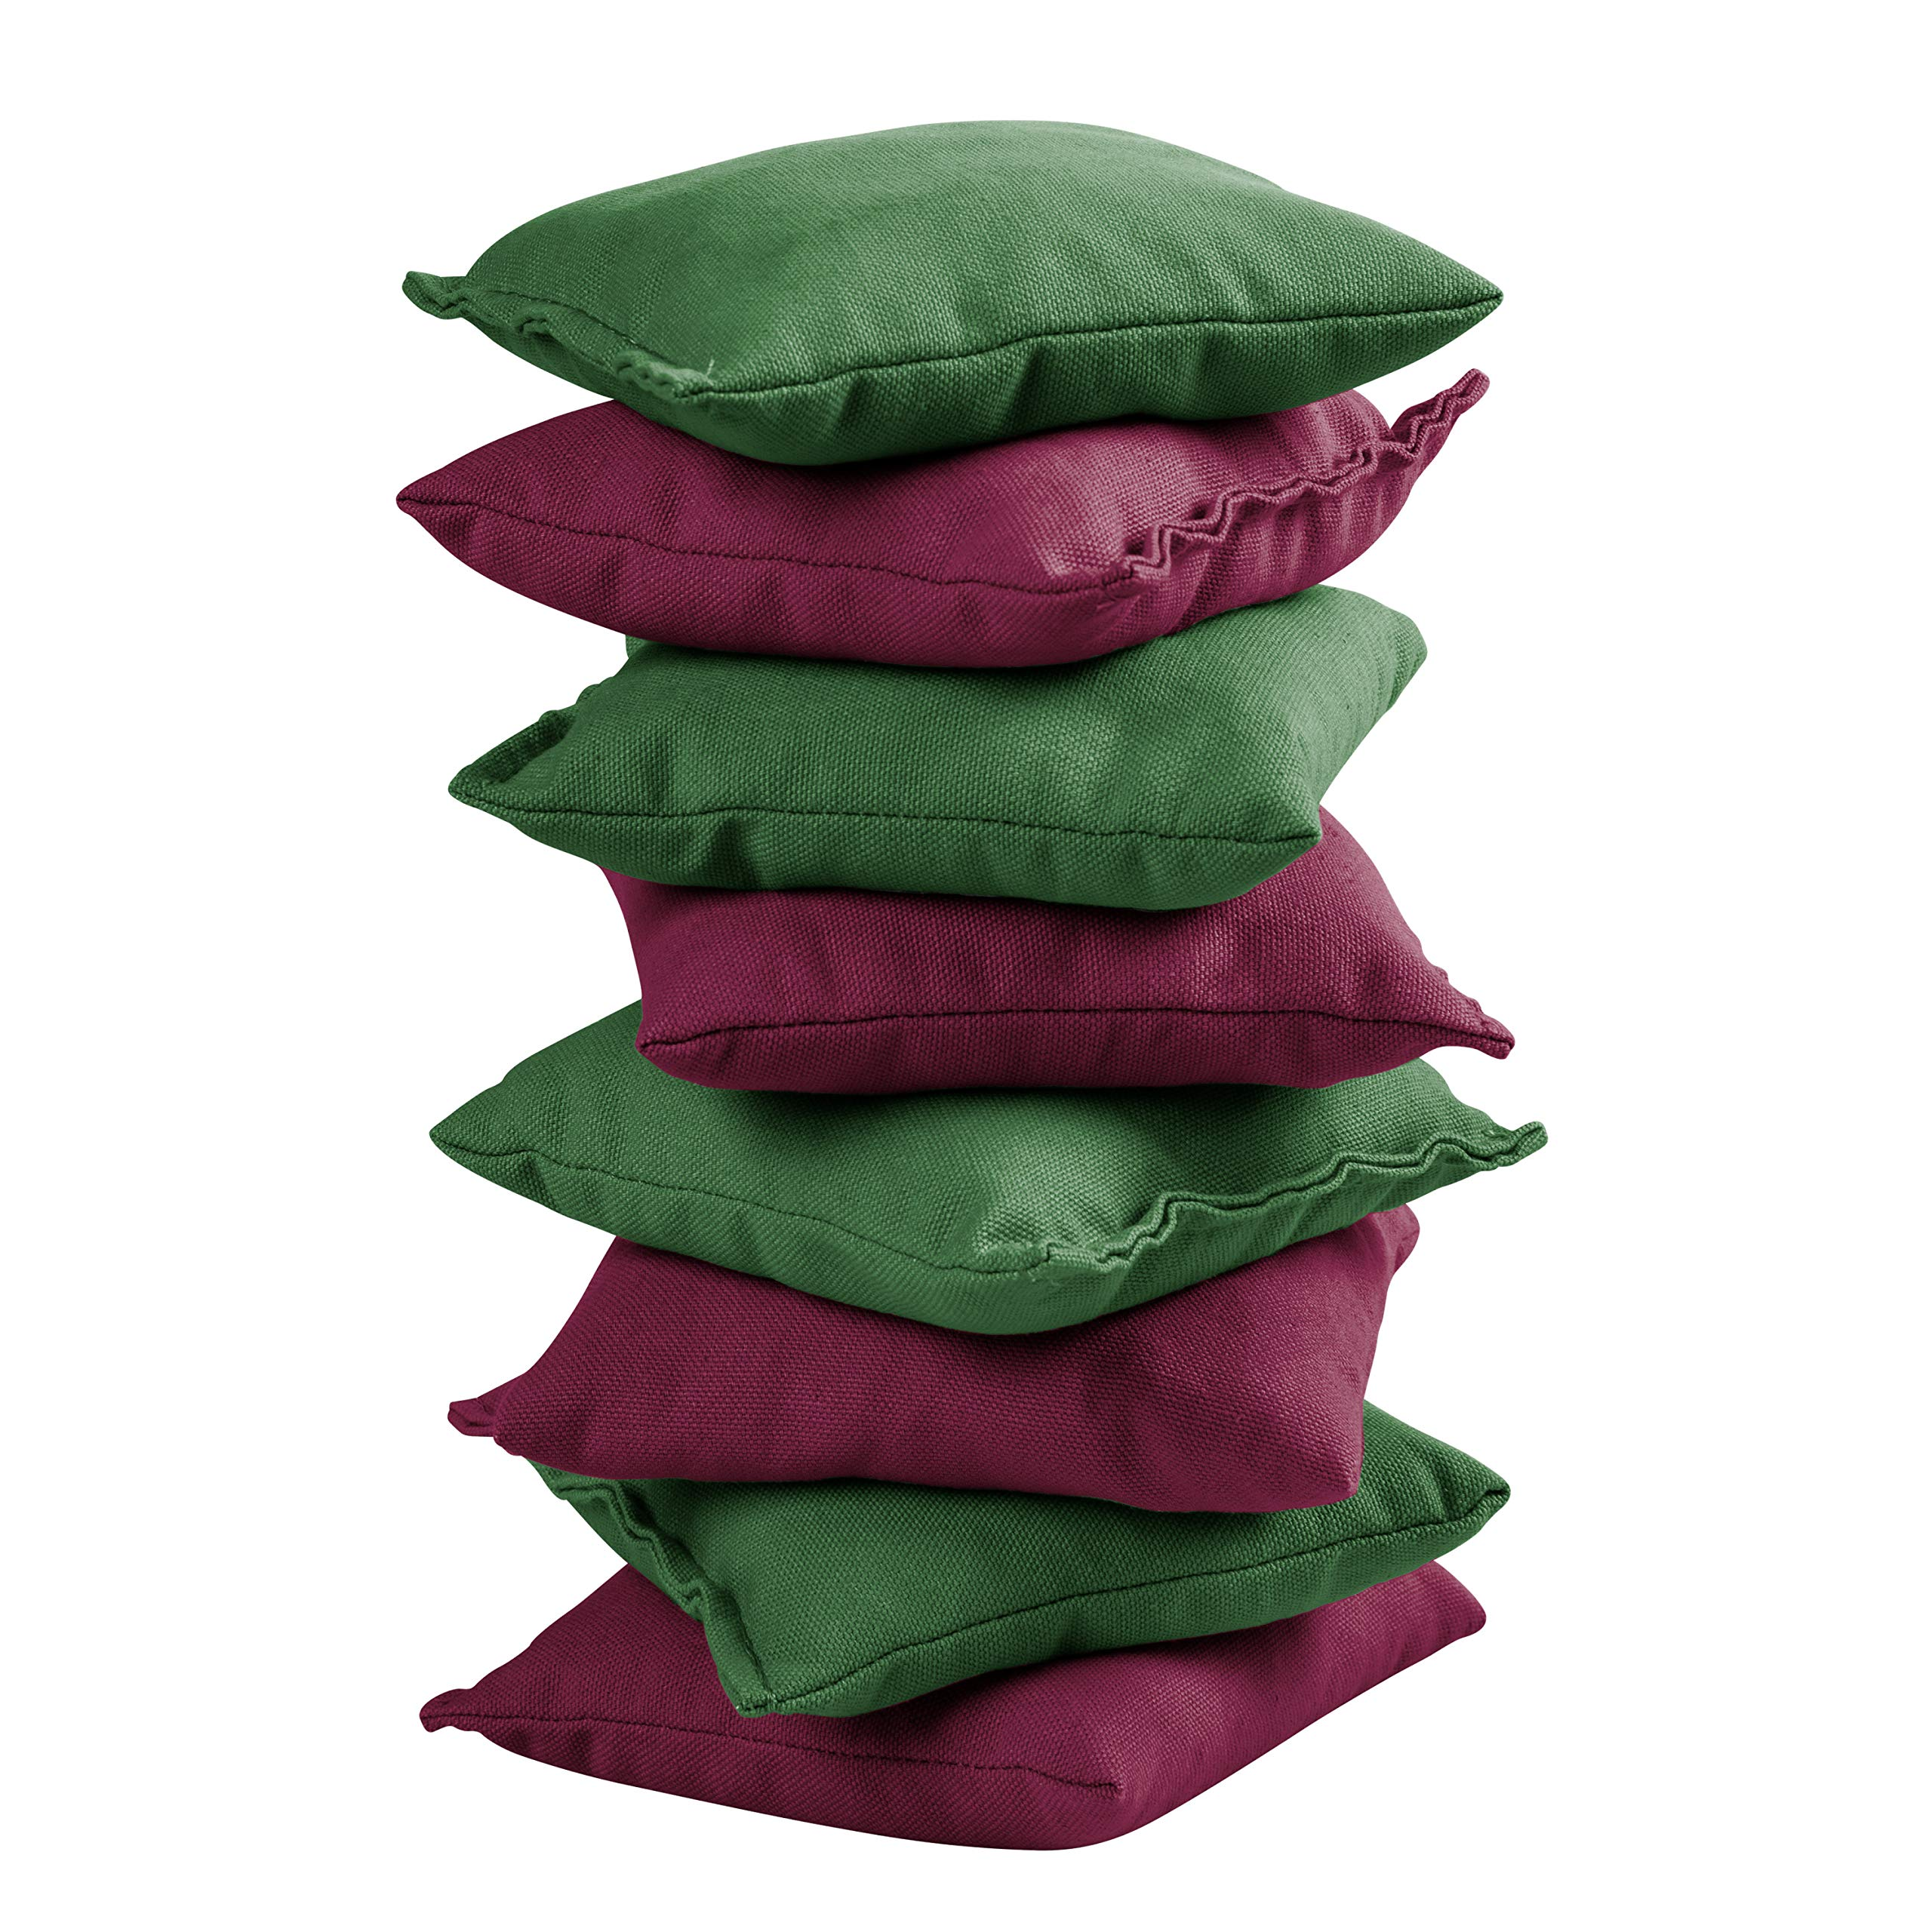 Victory Tailgate 8 Colored Corn Filled Regulation Cornhole Bags with Drawstring Pack (4 Burgundy, 4 Hunter Green) by Victory Tailgate (Image #2)